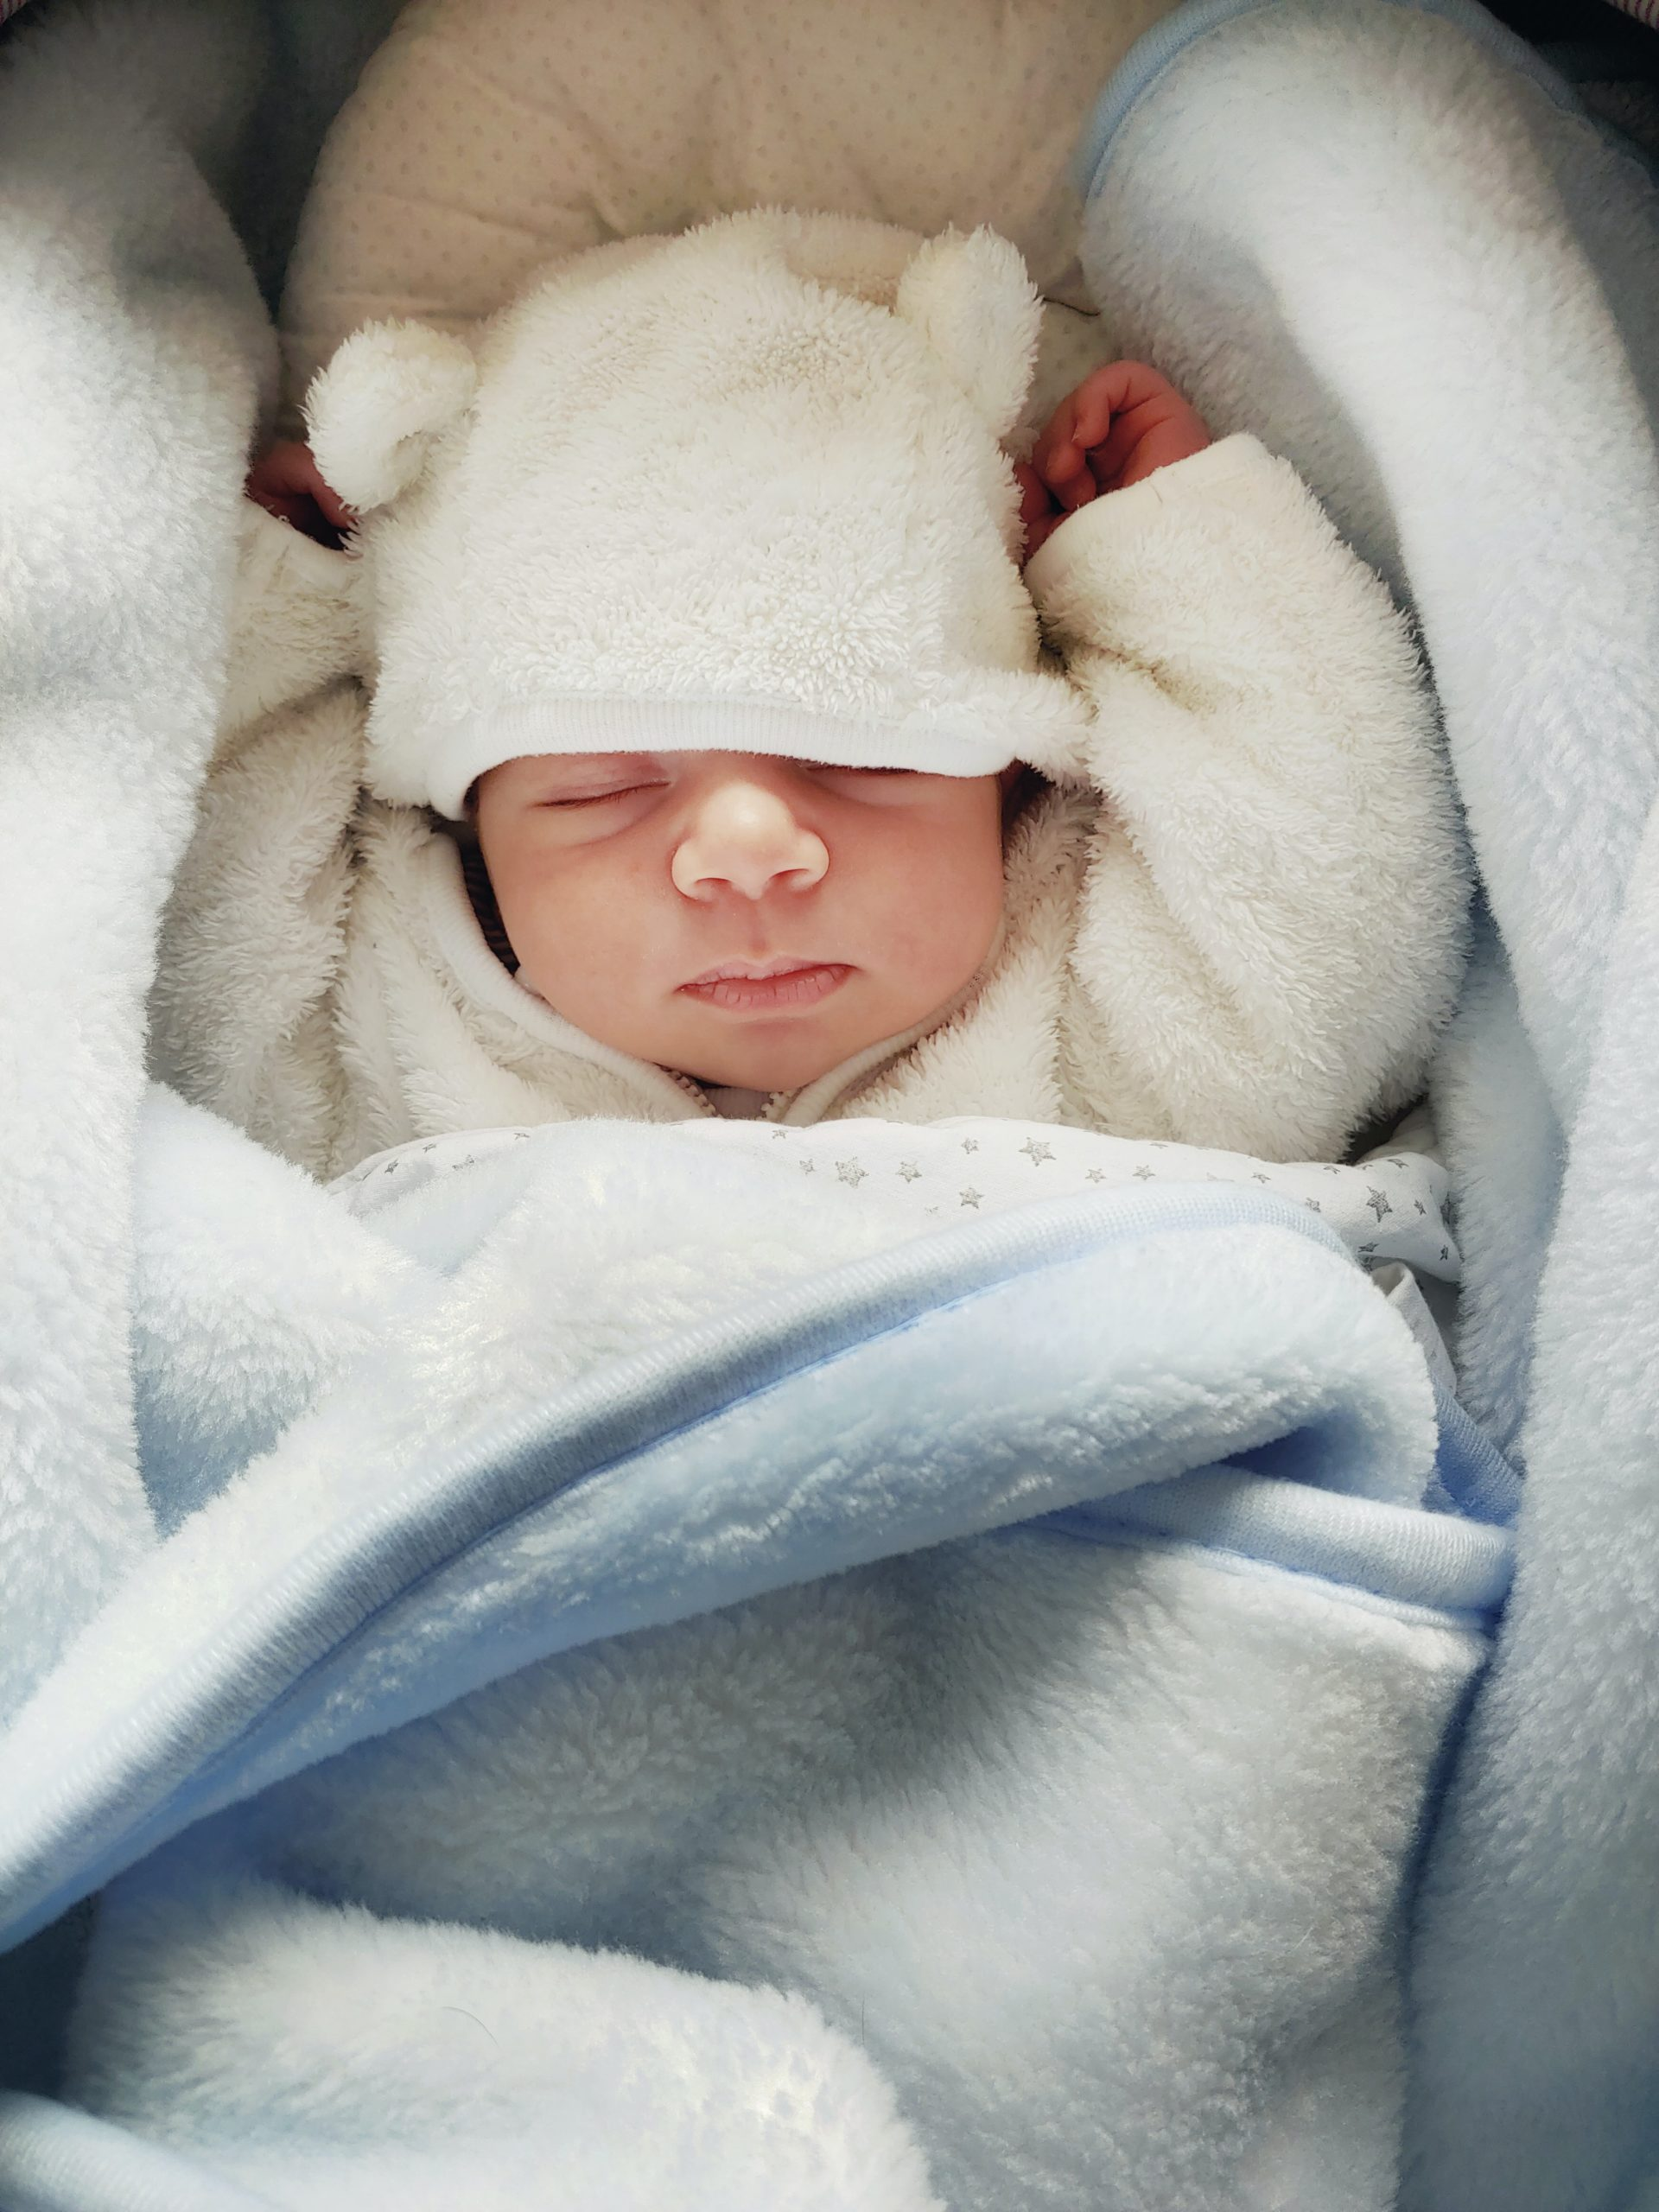 Care For A Newborn: How To Take Care Of A Newborn